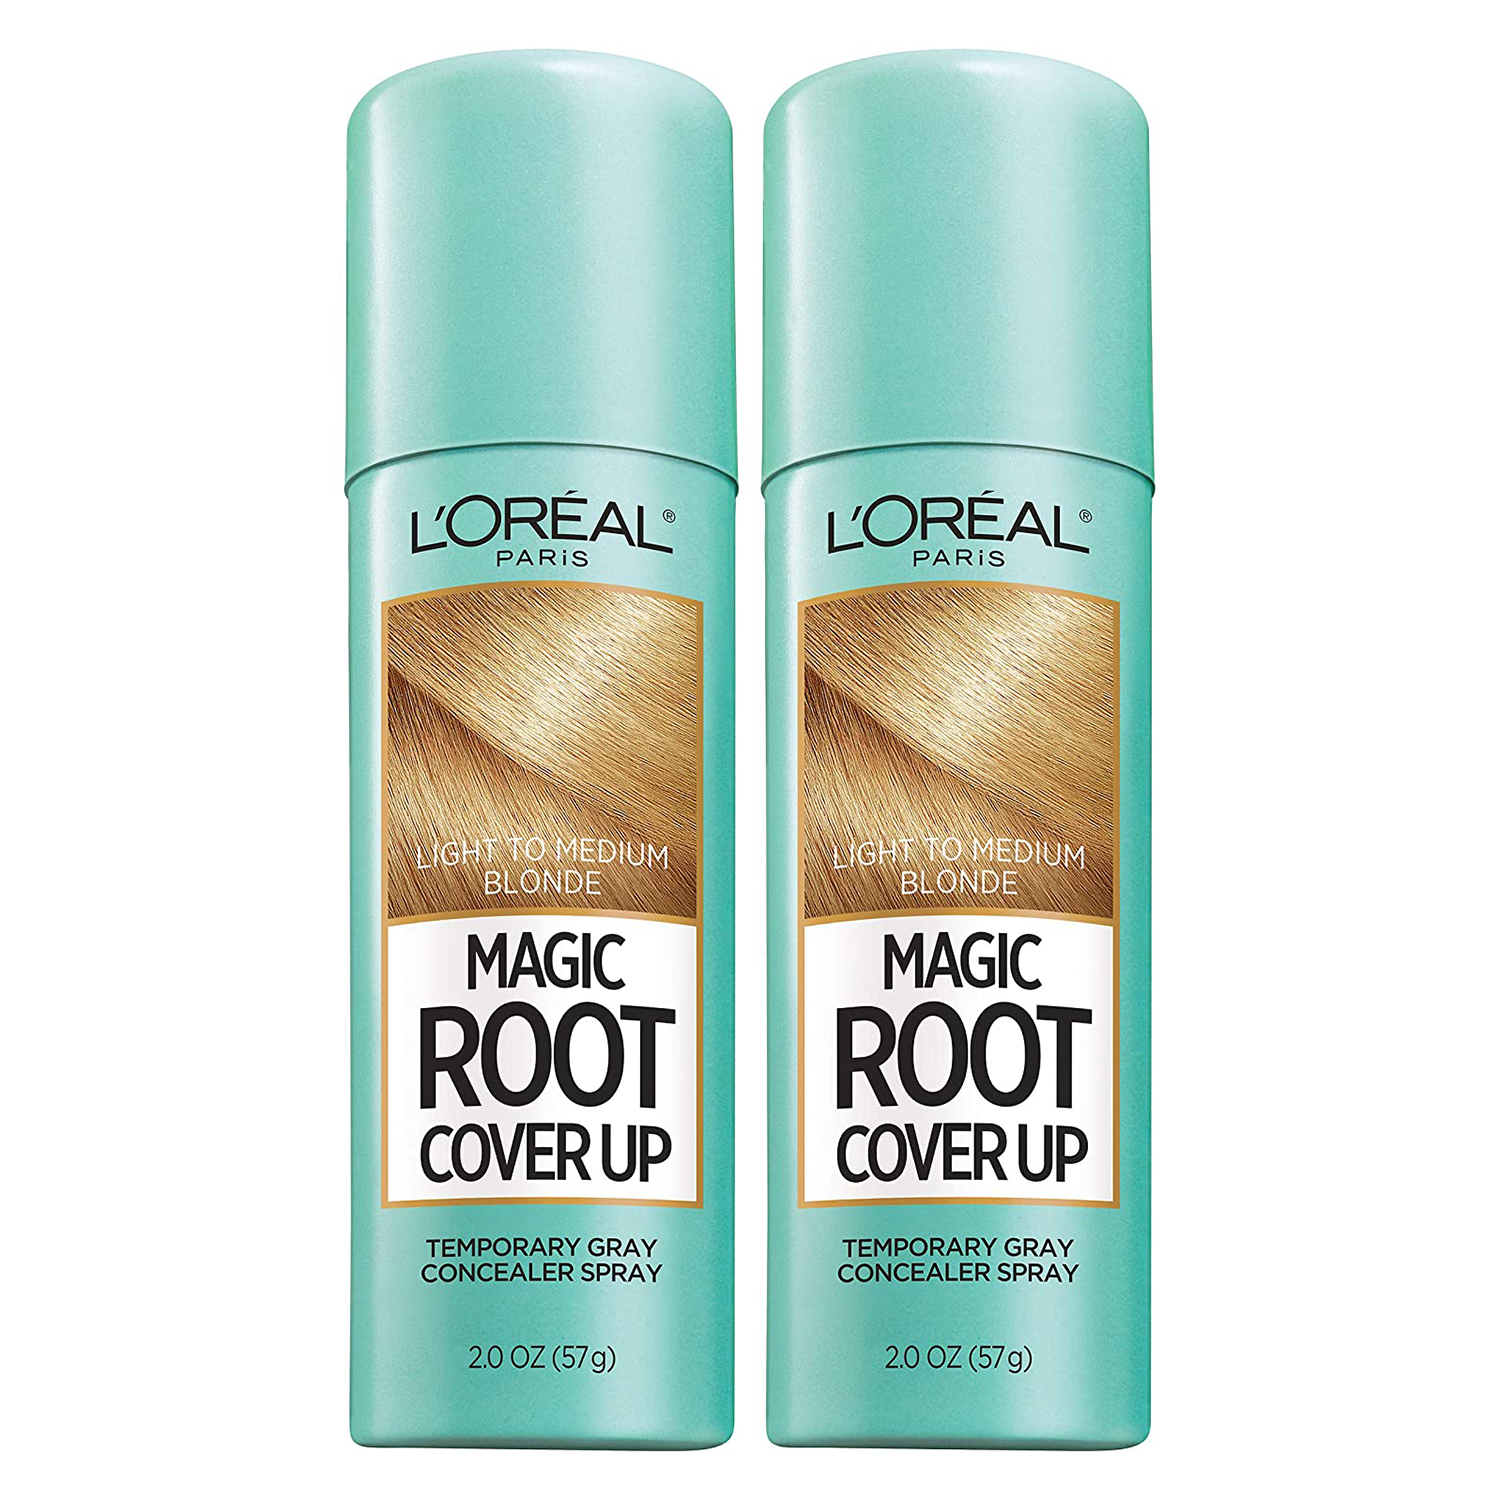 L'Oreal Paris Hair Color Magic Root Cover Up Temporary Colored Concealer Spray